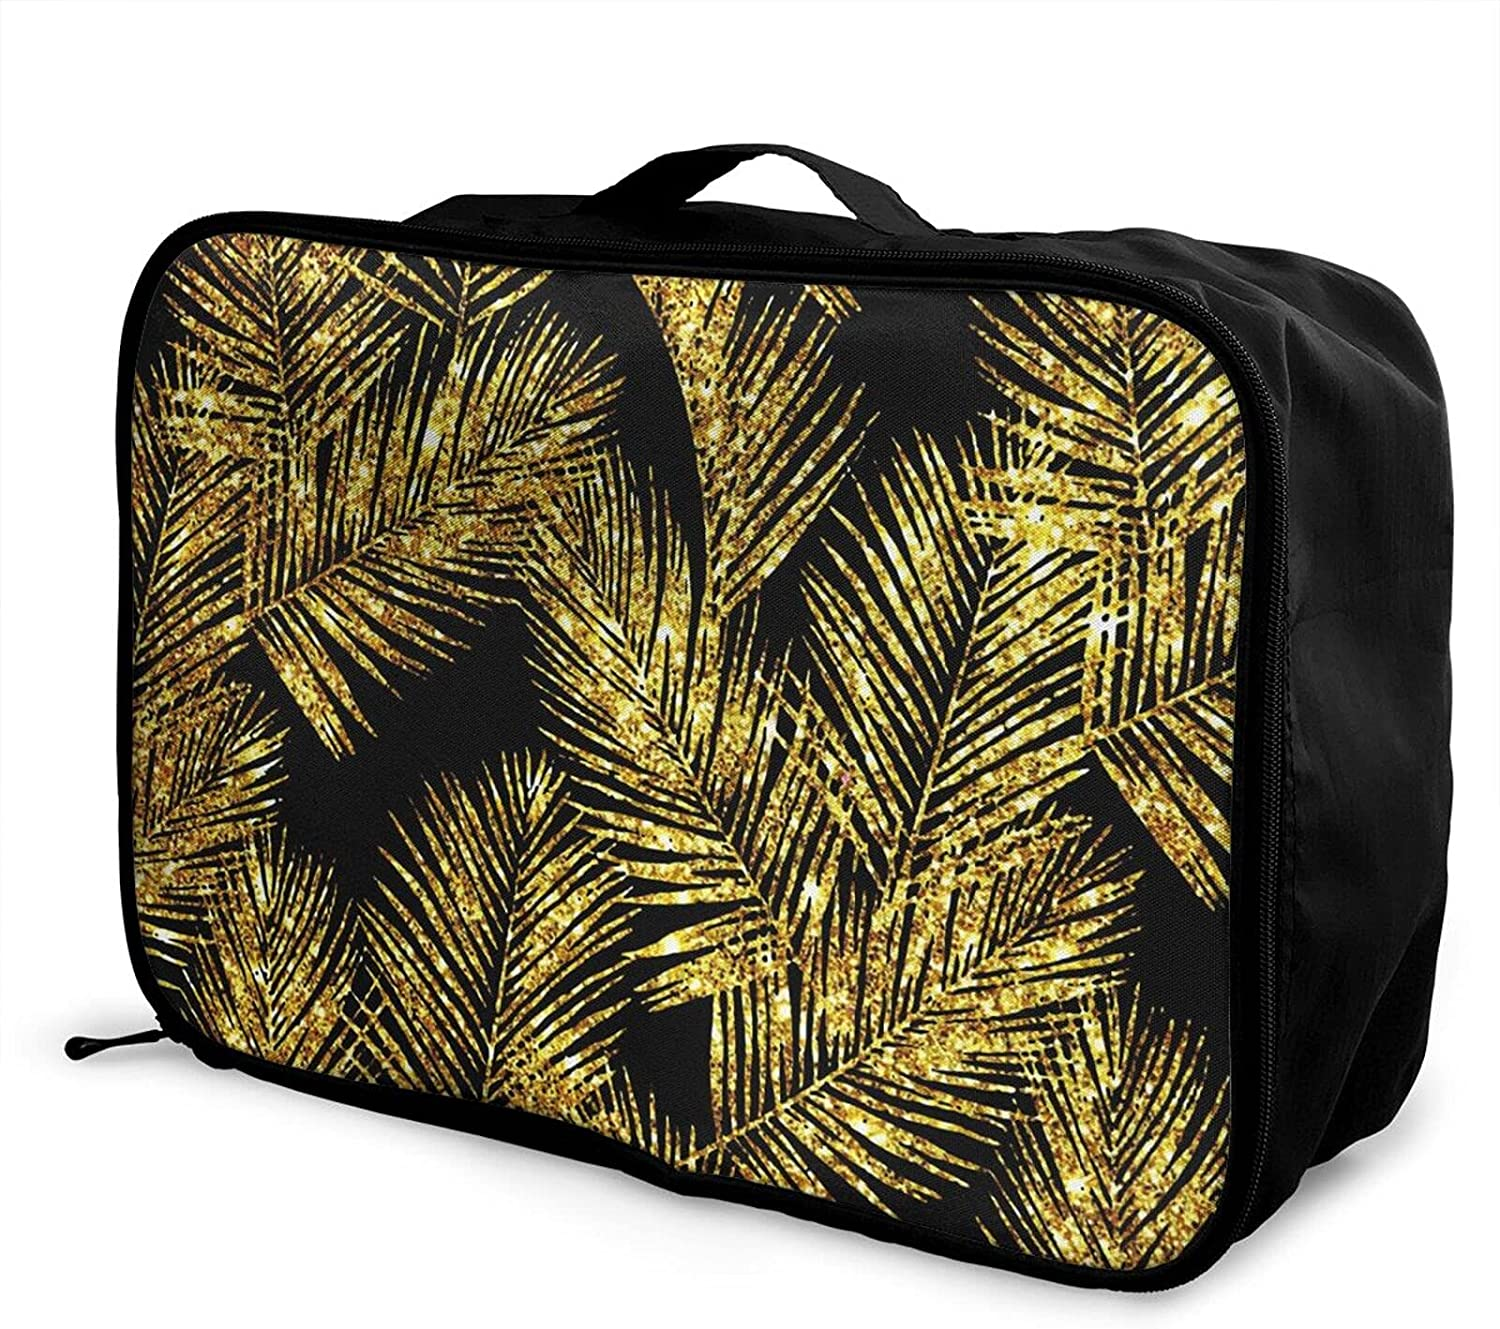 Foldable Travel Bag Tote Gold Carry- Hipster lowest price Oakland Mall Palm Leaves Glitter